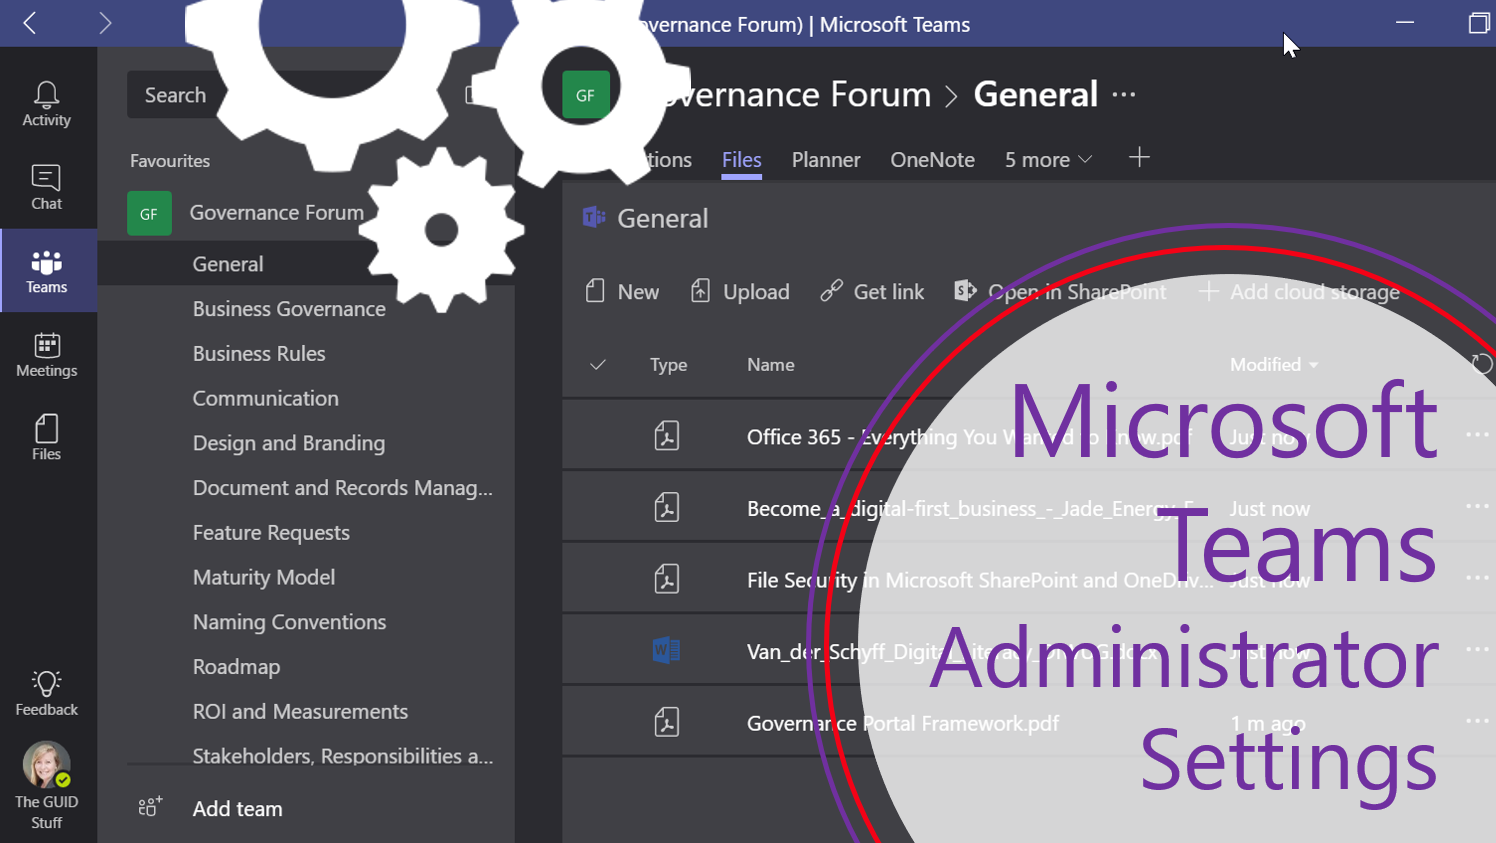 Microsoft 365 Day 32: Administrator Settings for Microsoft Teams